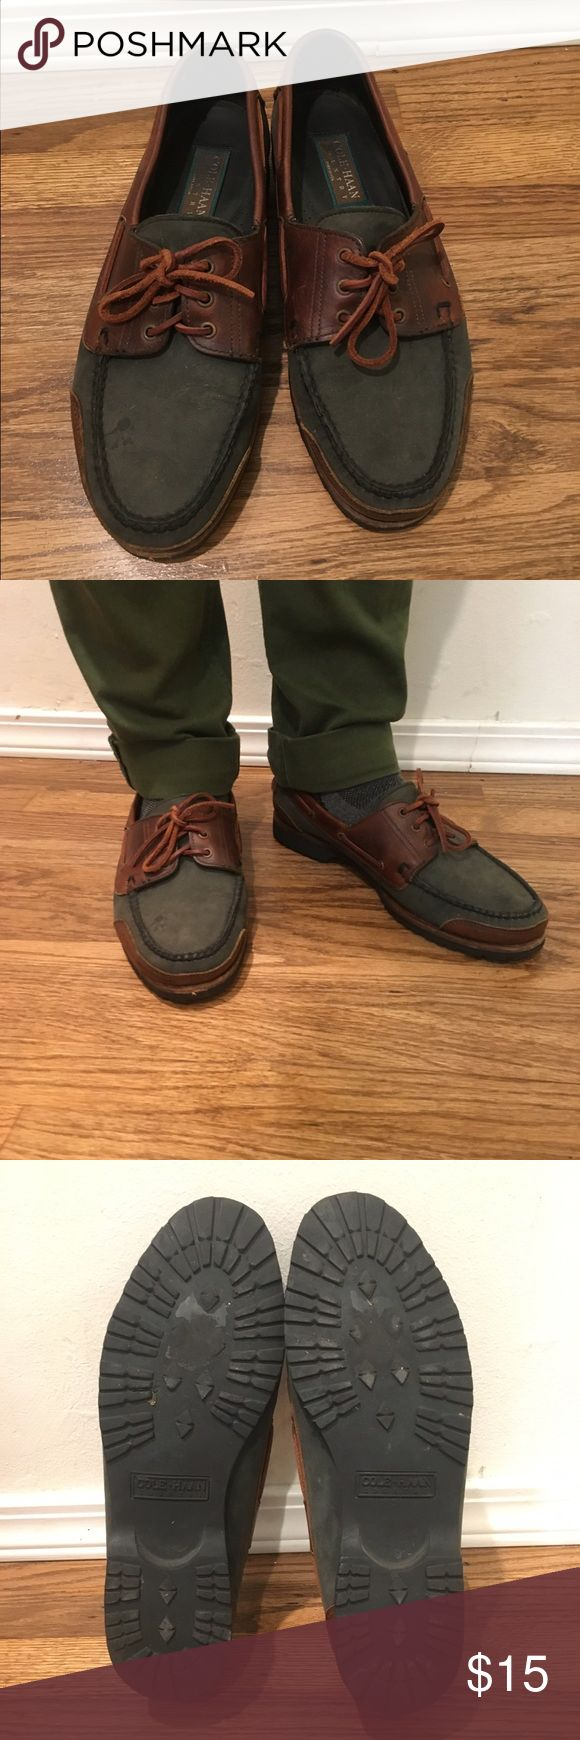 Cole Haan Boat Shoes Dark gray and brown boat shoes by Cole Haan barely worn. In great condition Cole Haan Shoes Boat Shoes